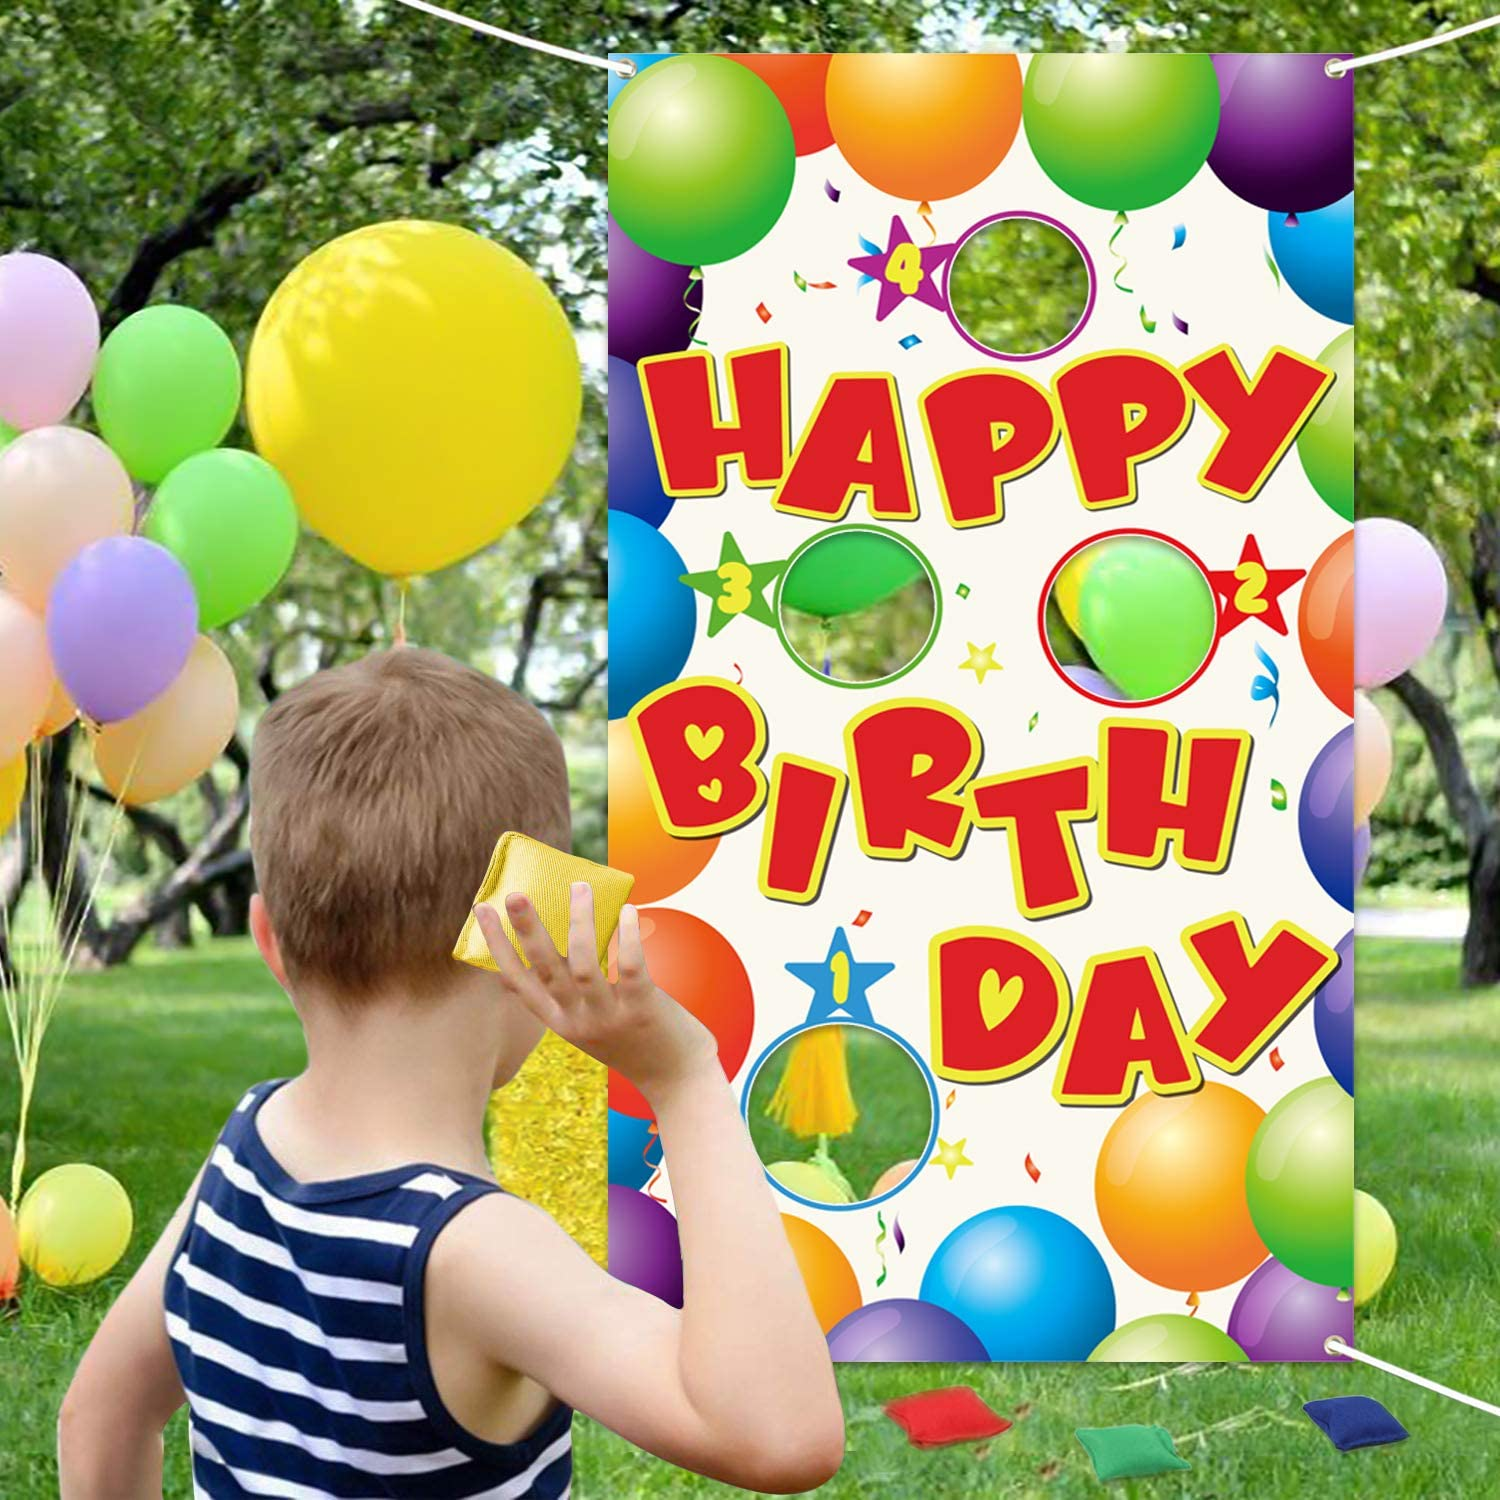 WATINC Happy Birthday Toss Game with 4 Bean Bags, Fun Carnival Birthday Party Game for Kids and Adults, Colorful Balloons Banner for Birthday Party Decorations Supplies, Indoor Outdoor Yard Activity